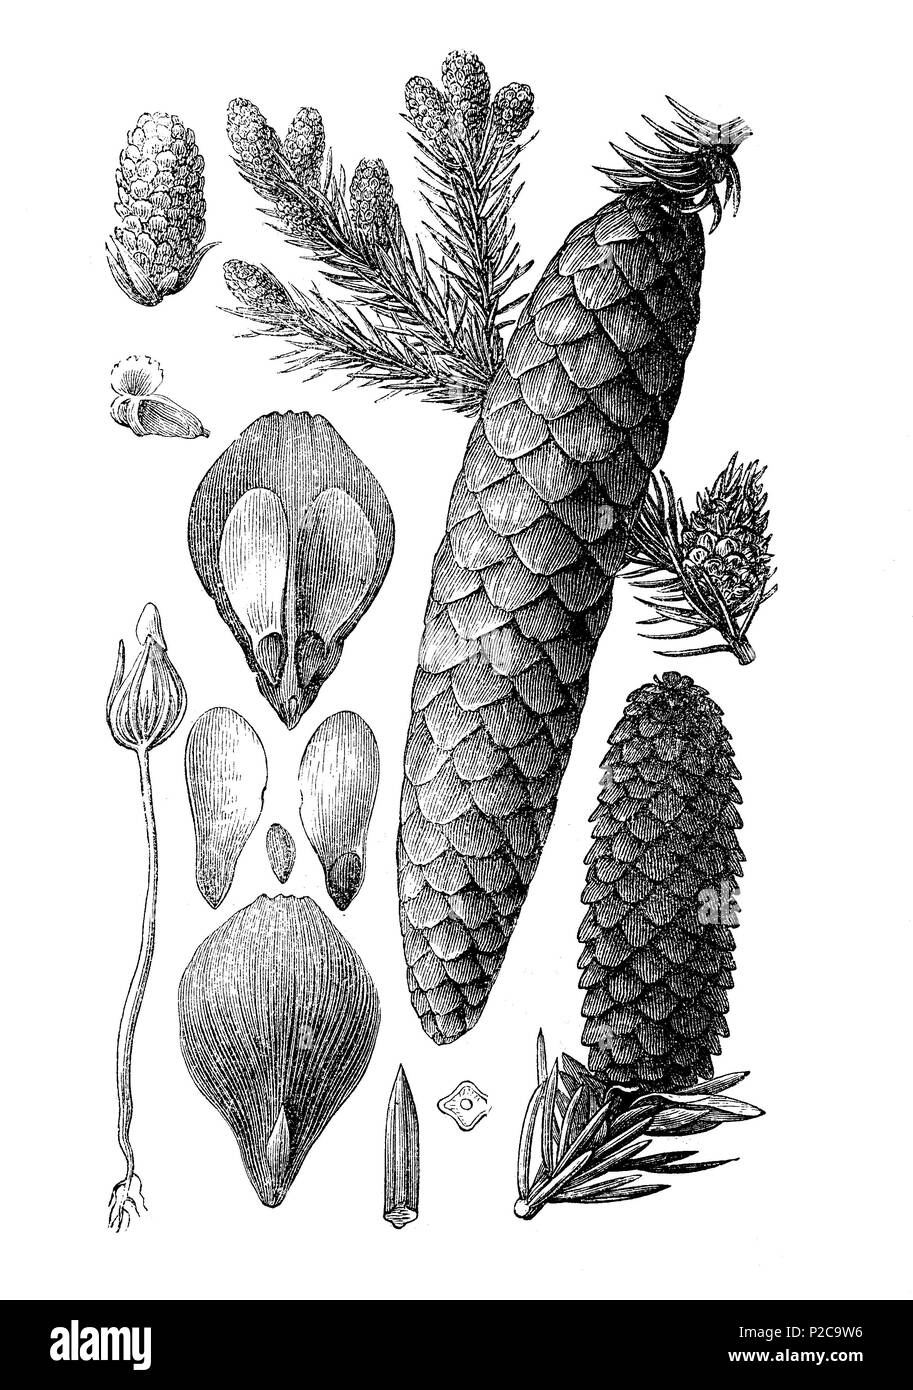 fruit and blossom of the Norway spruce, Picea vulgaris, Picea abies, Fichte, Früchte und Blüten, digital improved reproduction from an original print from the 19th century, 1881 - Stock Image